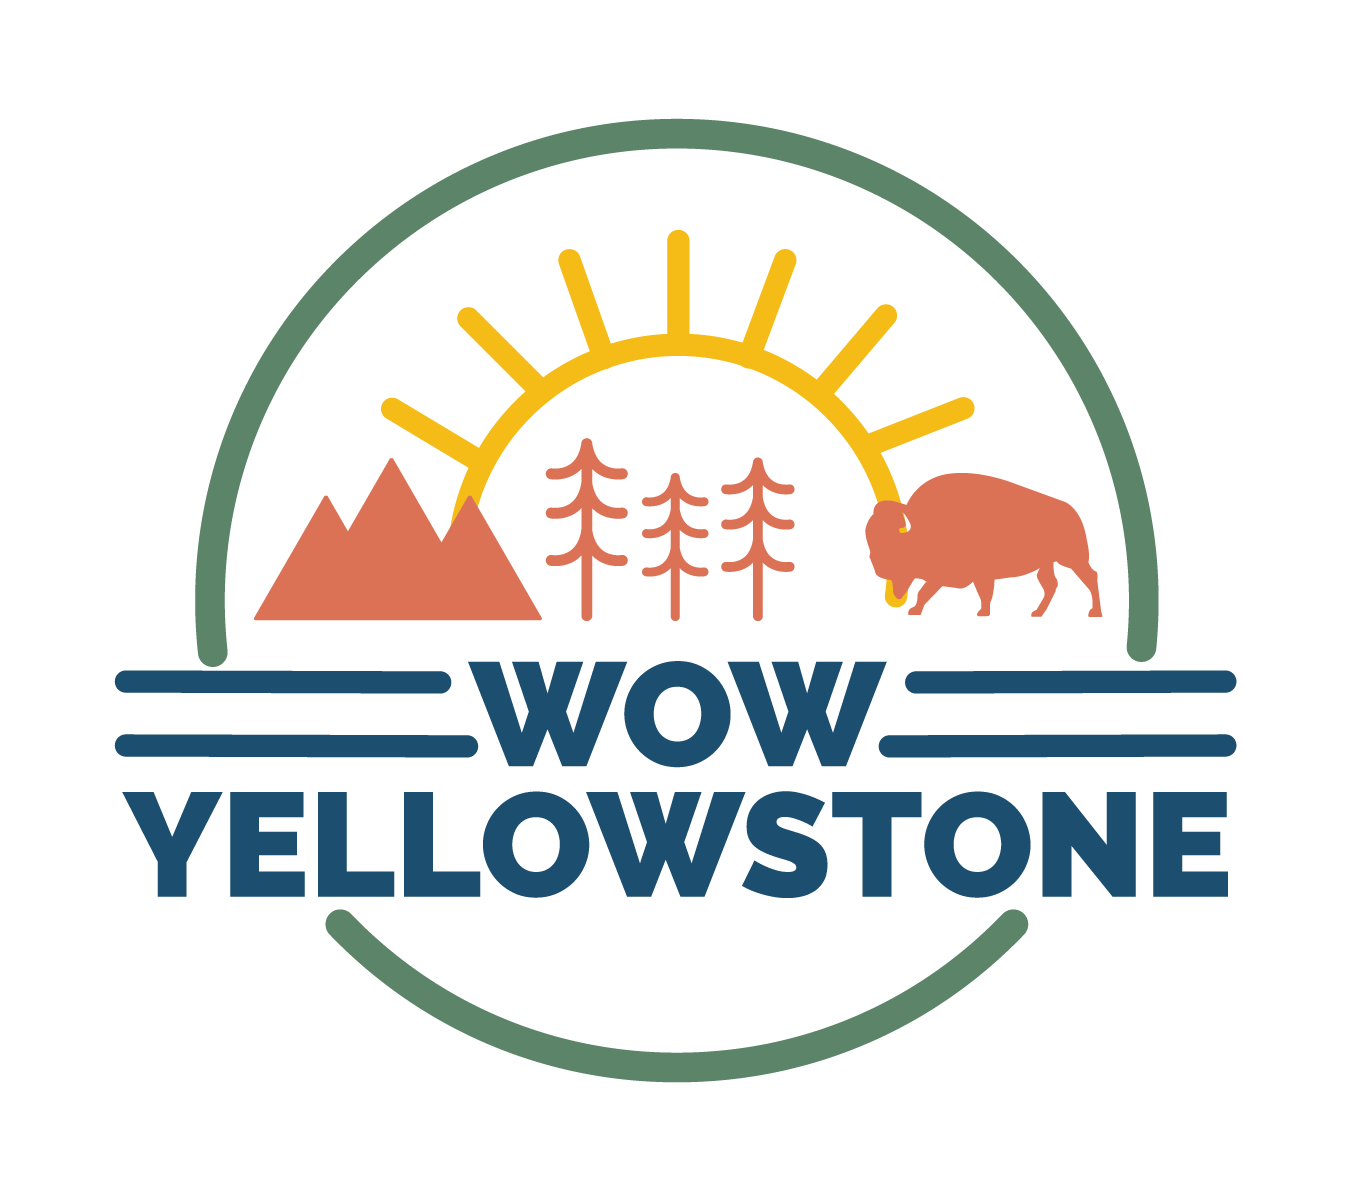 Wow Yellowstone!